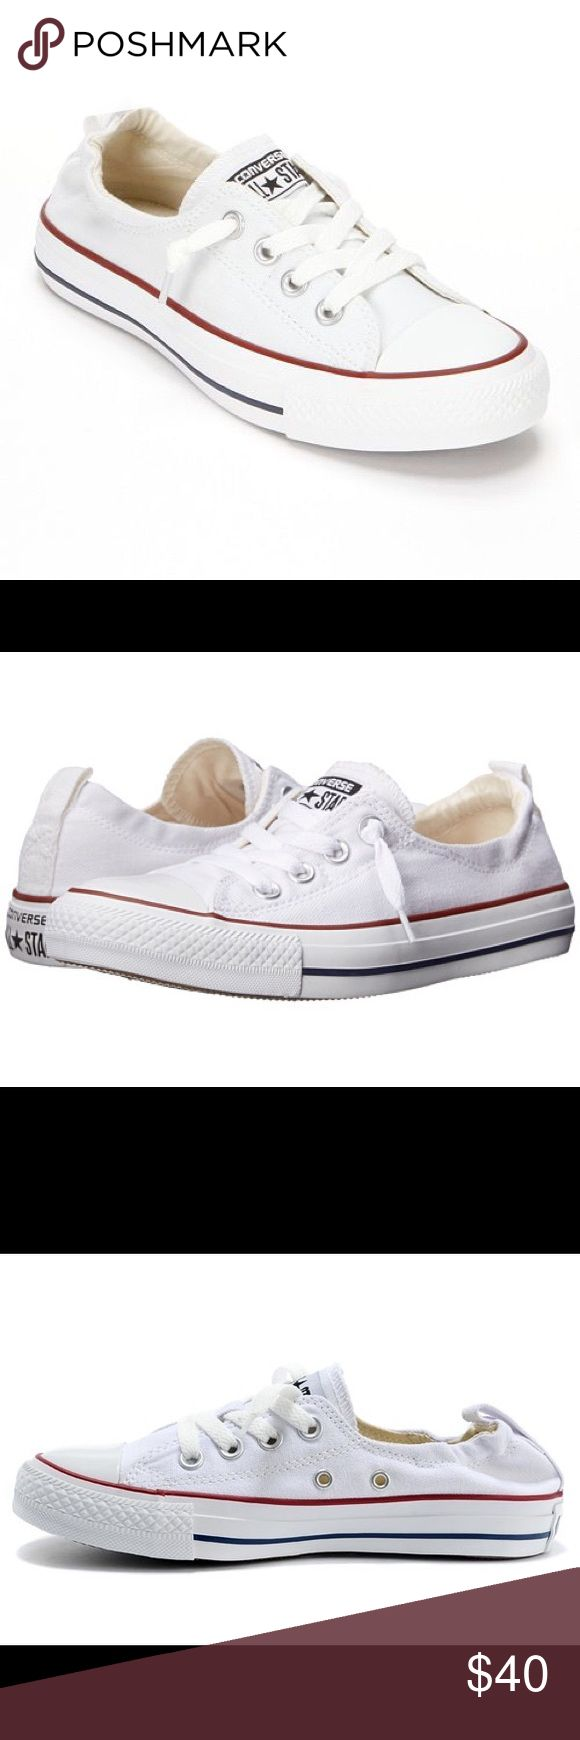 Converse Chuck Taylor White Slip Ons Worn only once or twice so they're in new condition Converse Shoes Sneakers